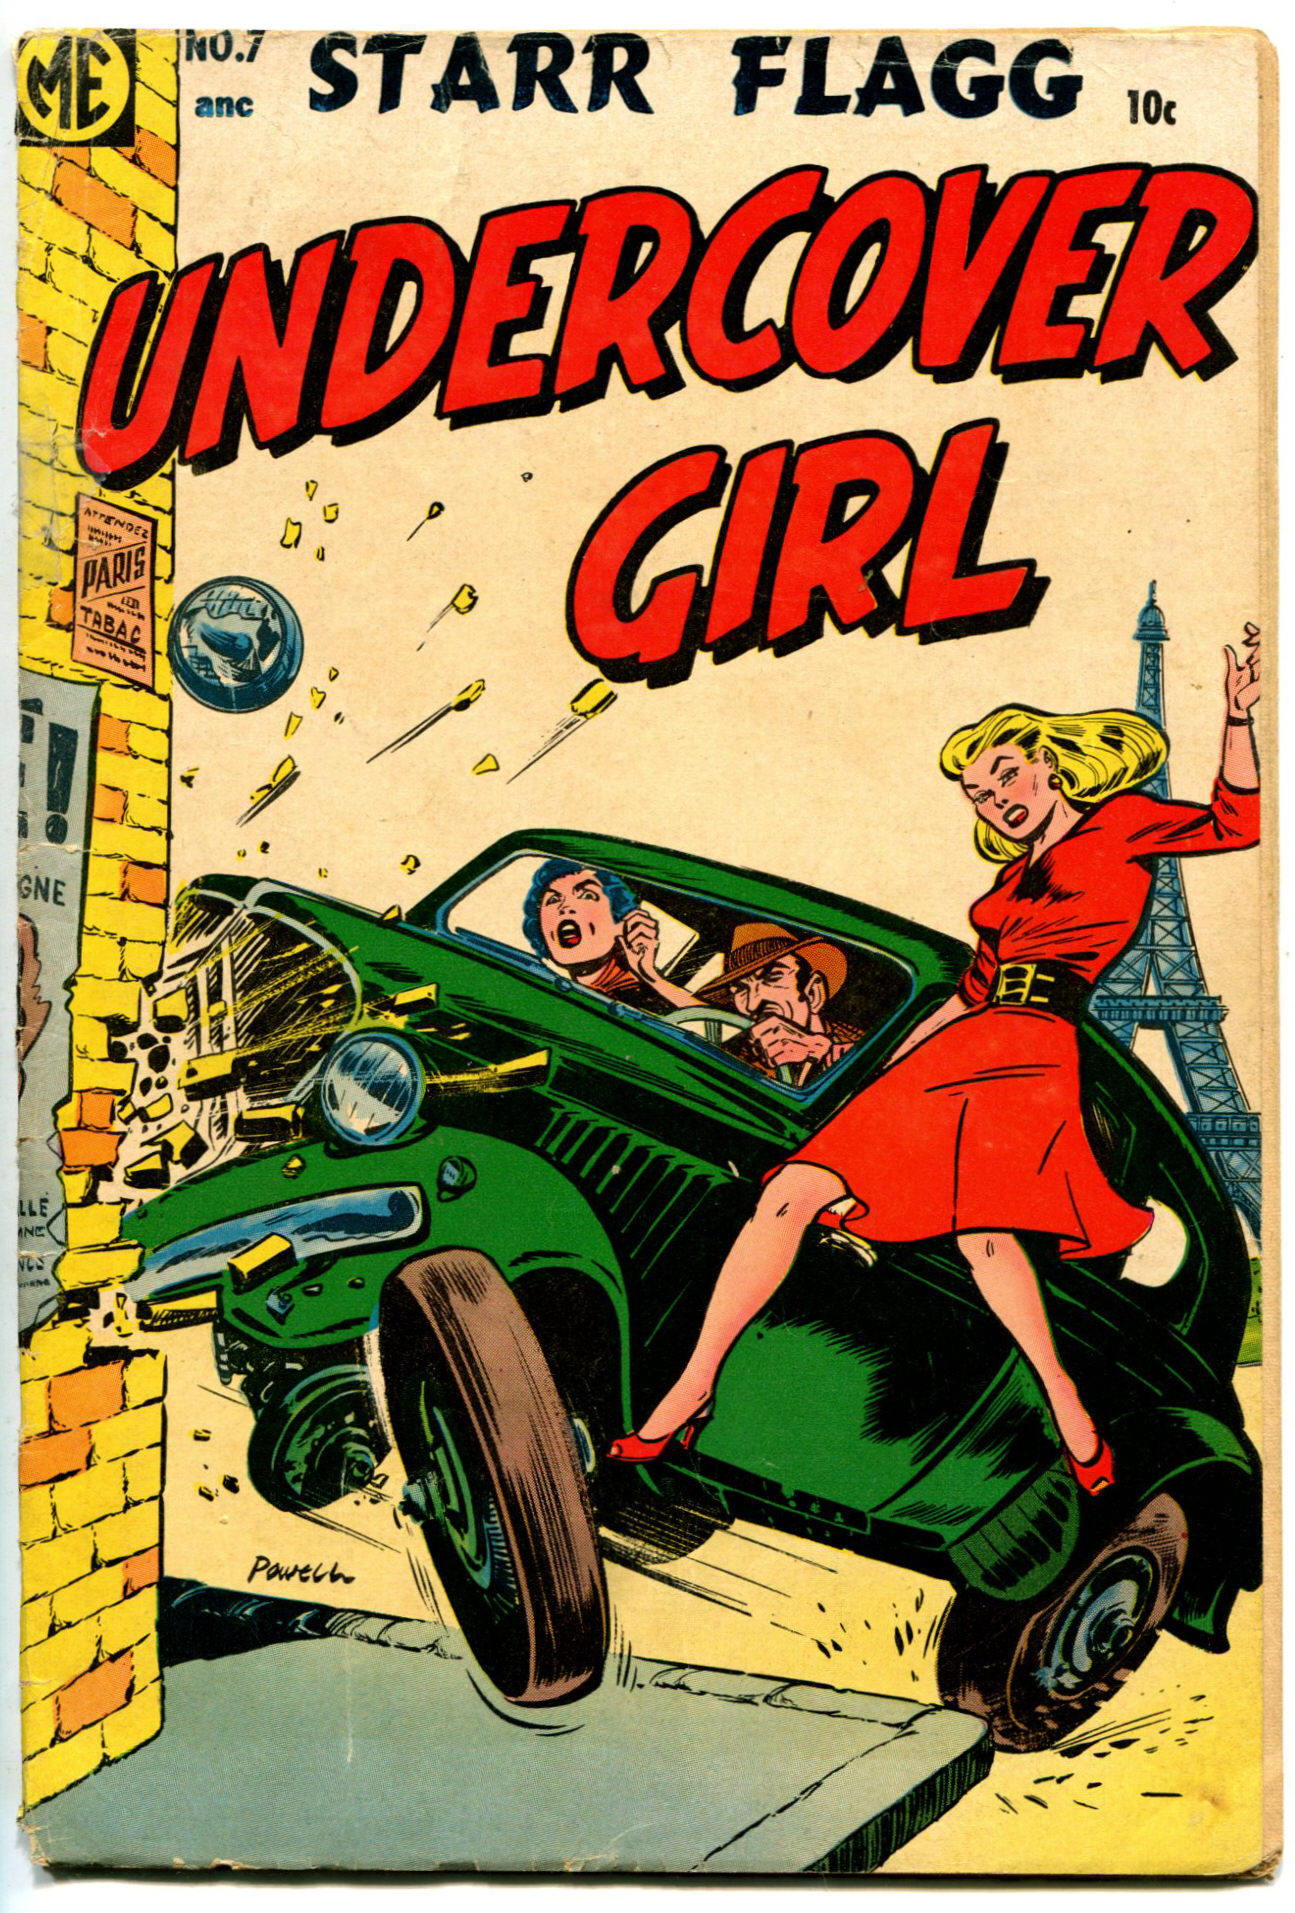 Undercover Girl #7 by Magazine Enterprises